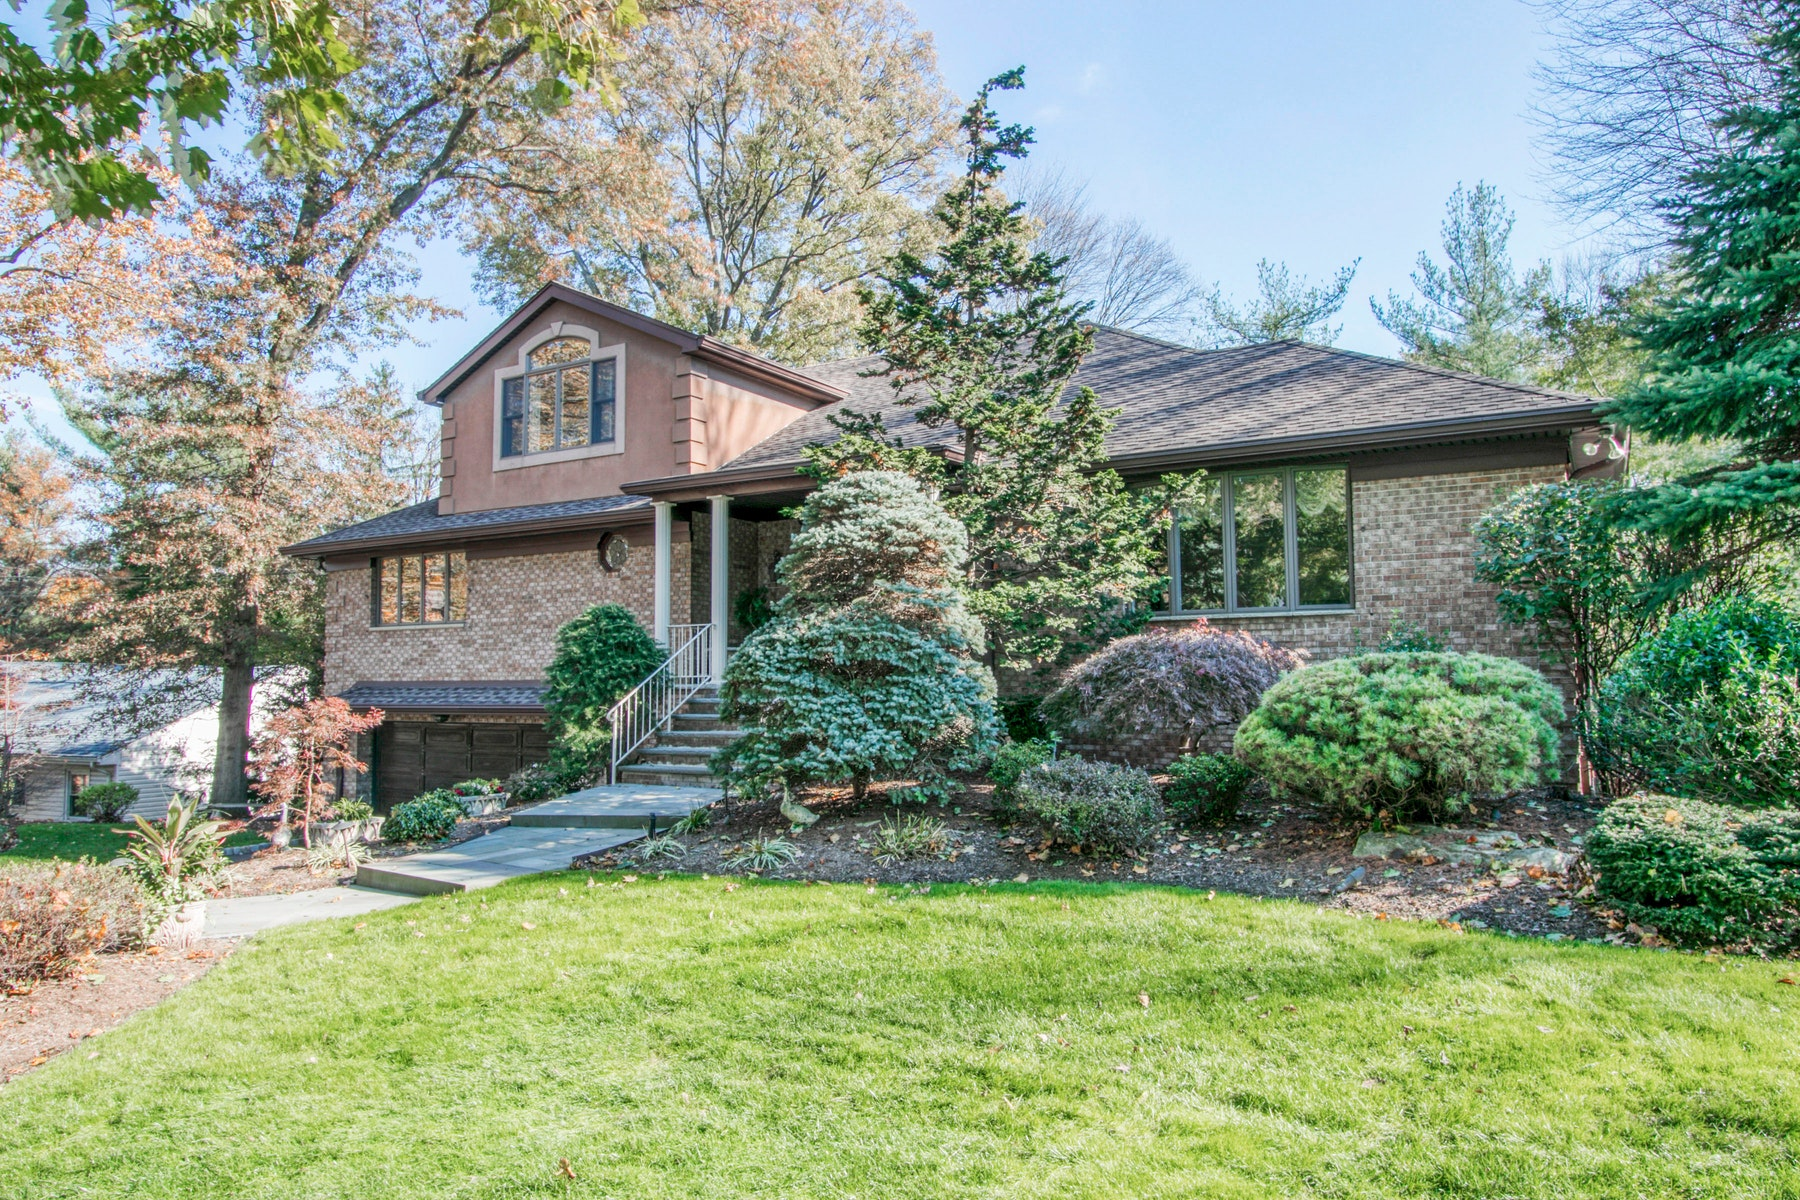 Single Family Homes for Active at Stunning Brick Colonial Home 500 Mildred Pl. Oradell, New Jersey 07649 United States